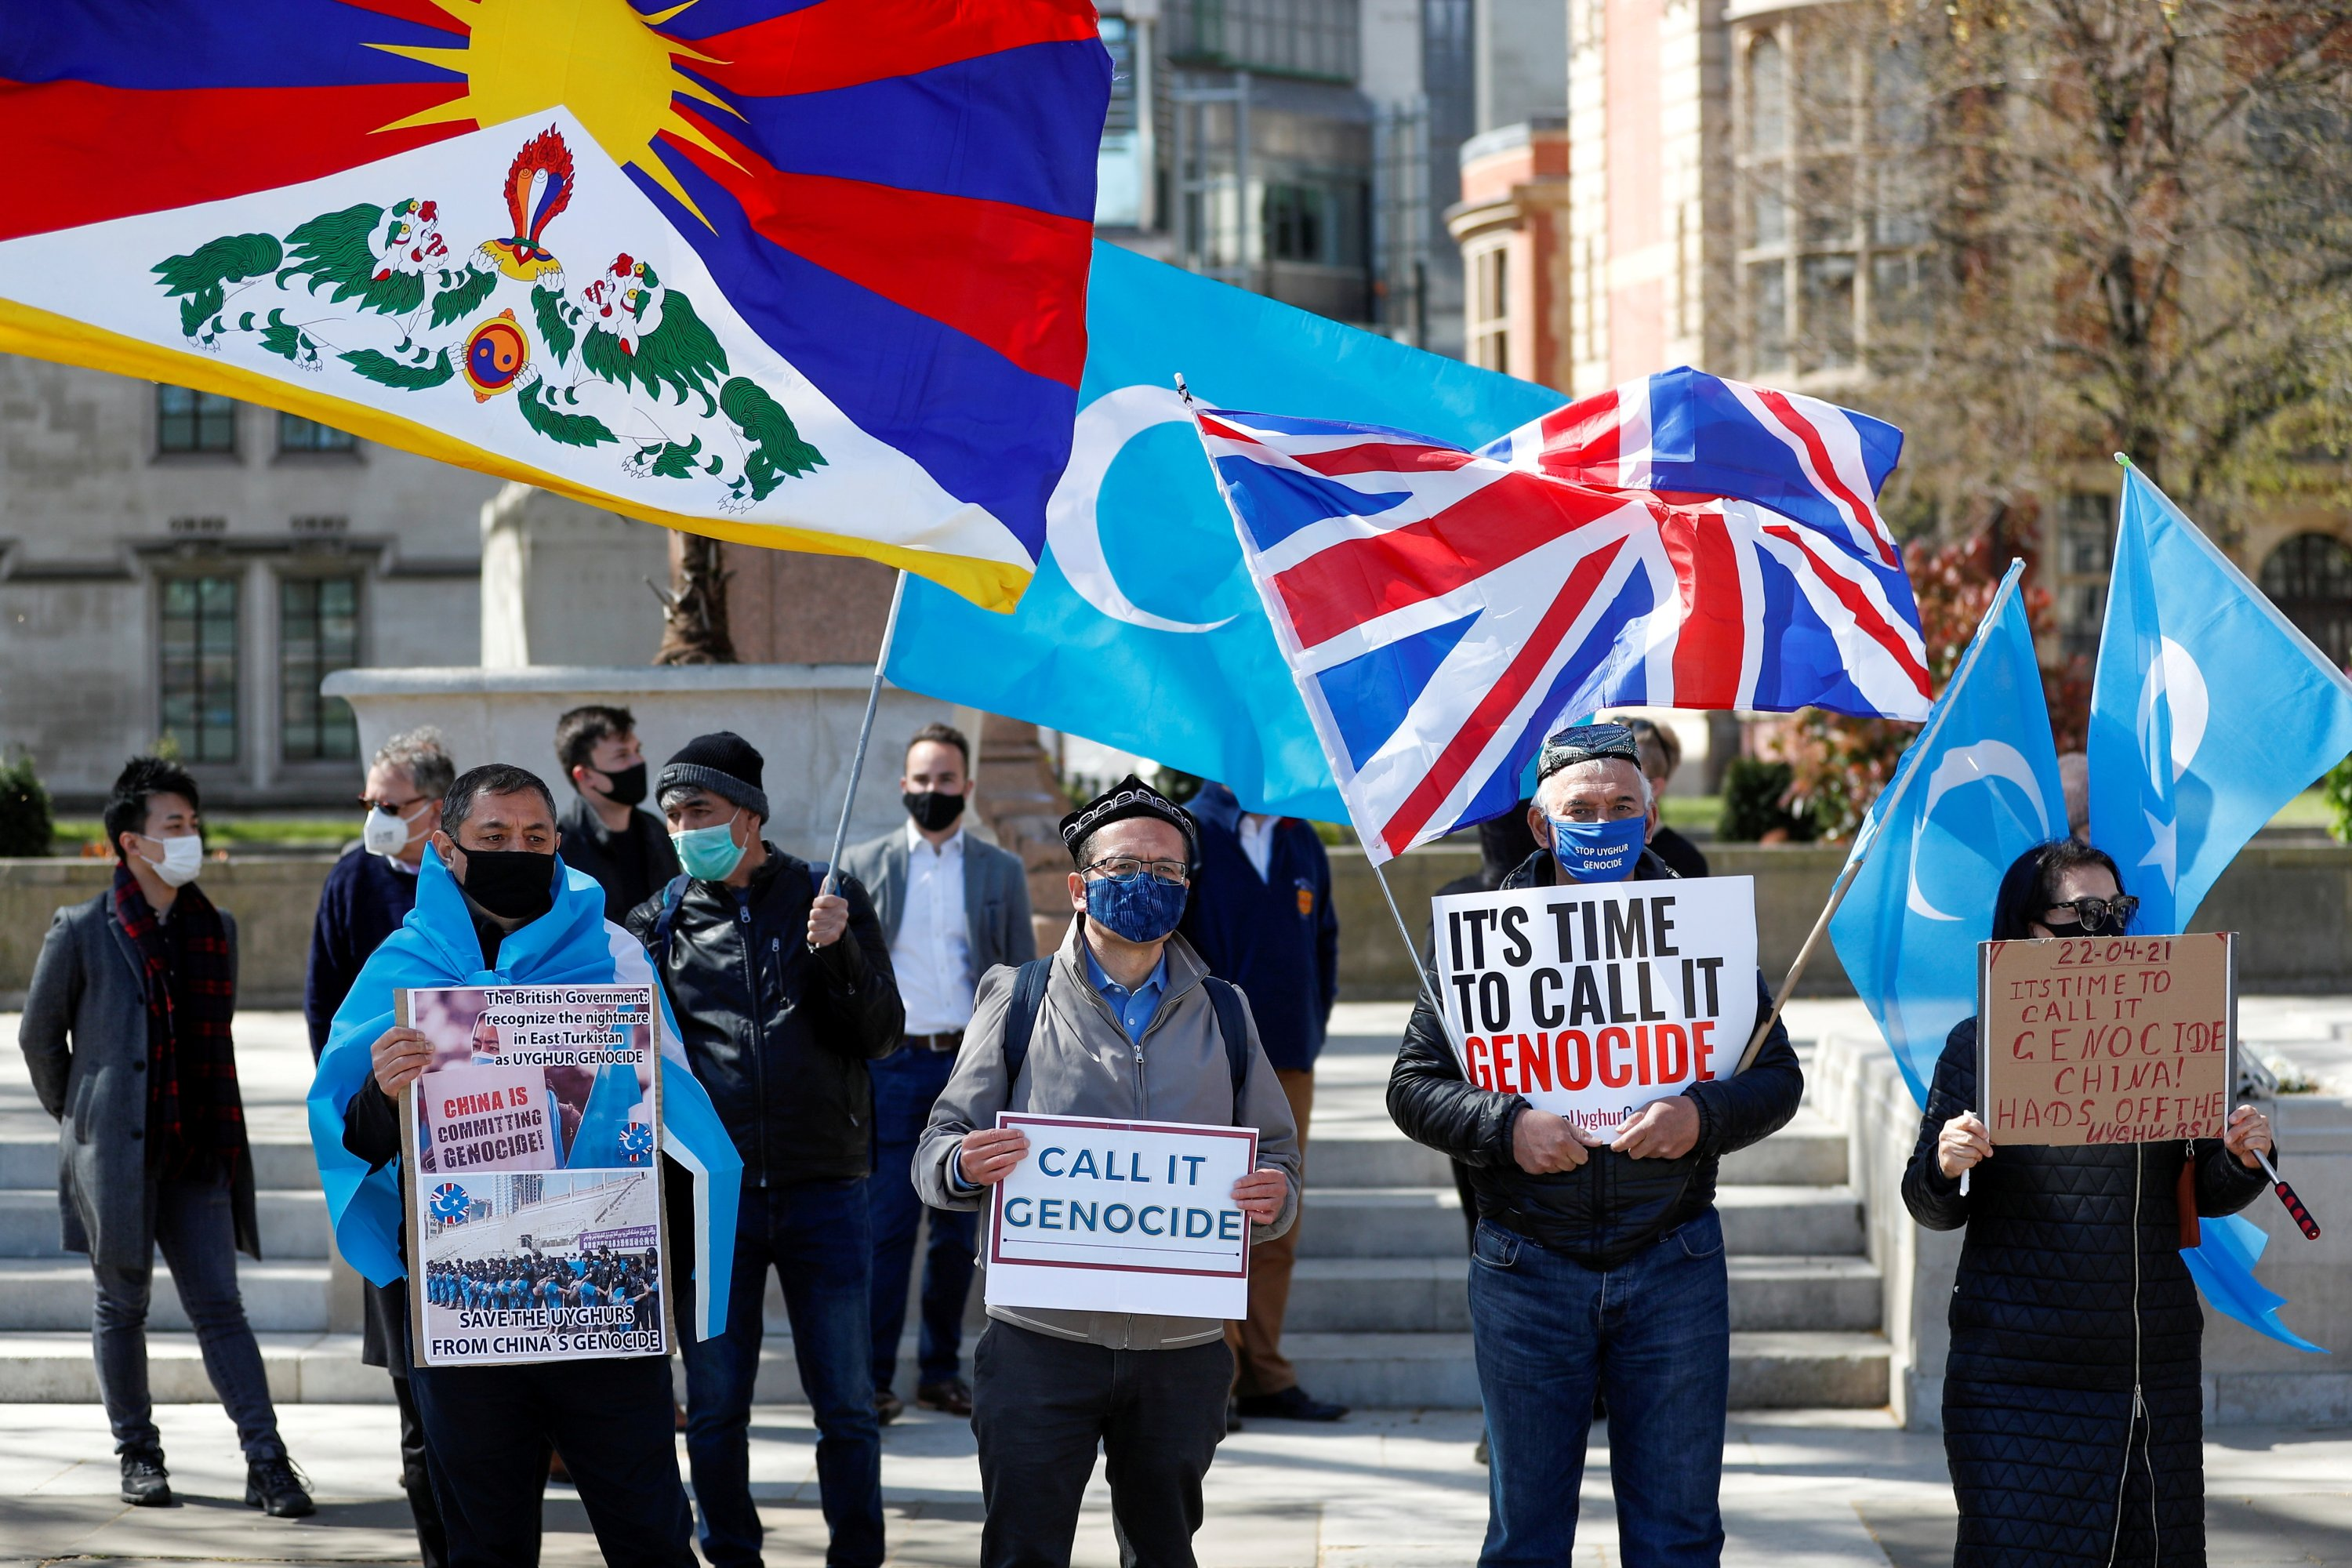 Demonstrators hold placards during a protest against the Uyghur genocide, in London, Britain, April 22, 2021. (Reuters Photo)